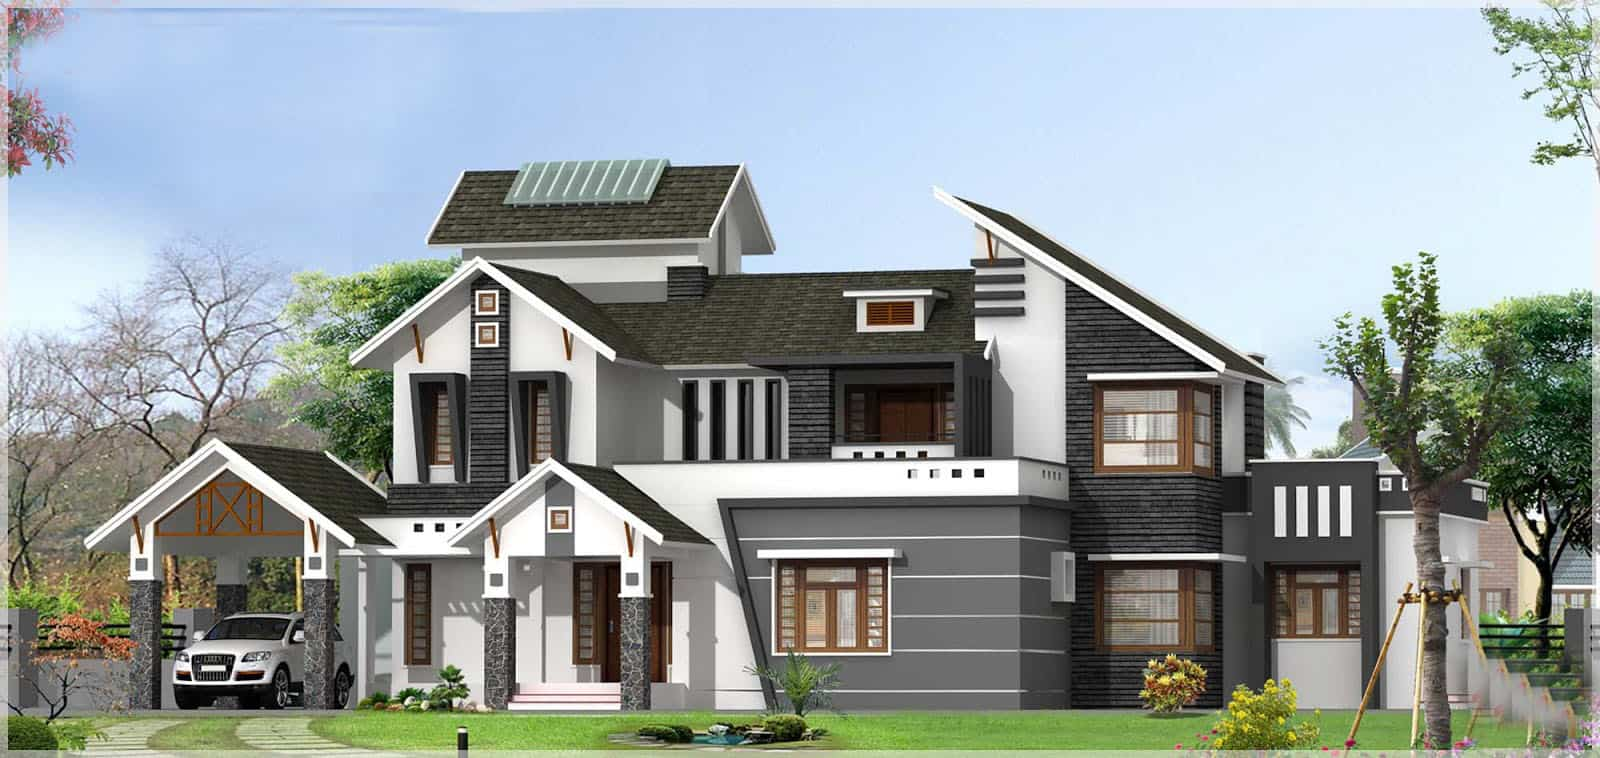 Sloping roof kerala house design at 3136 with pergolas for Beautiful model house